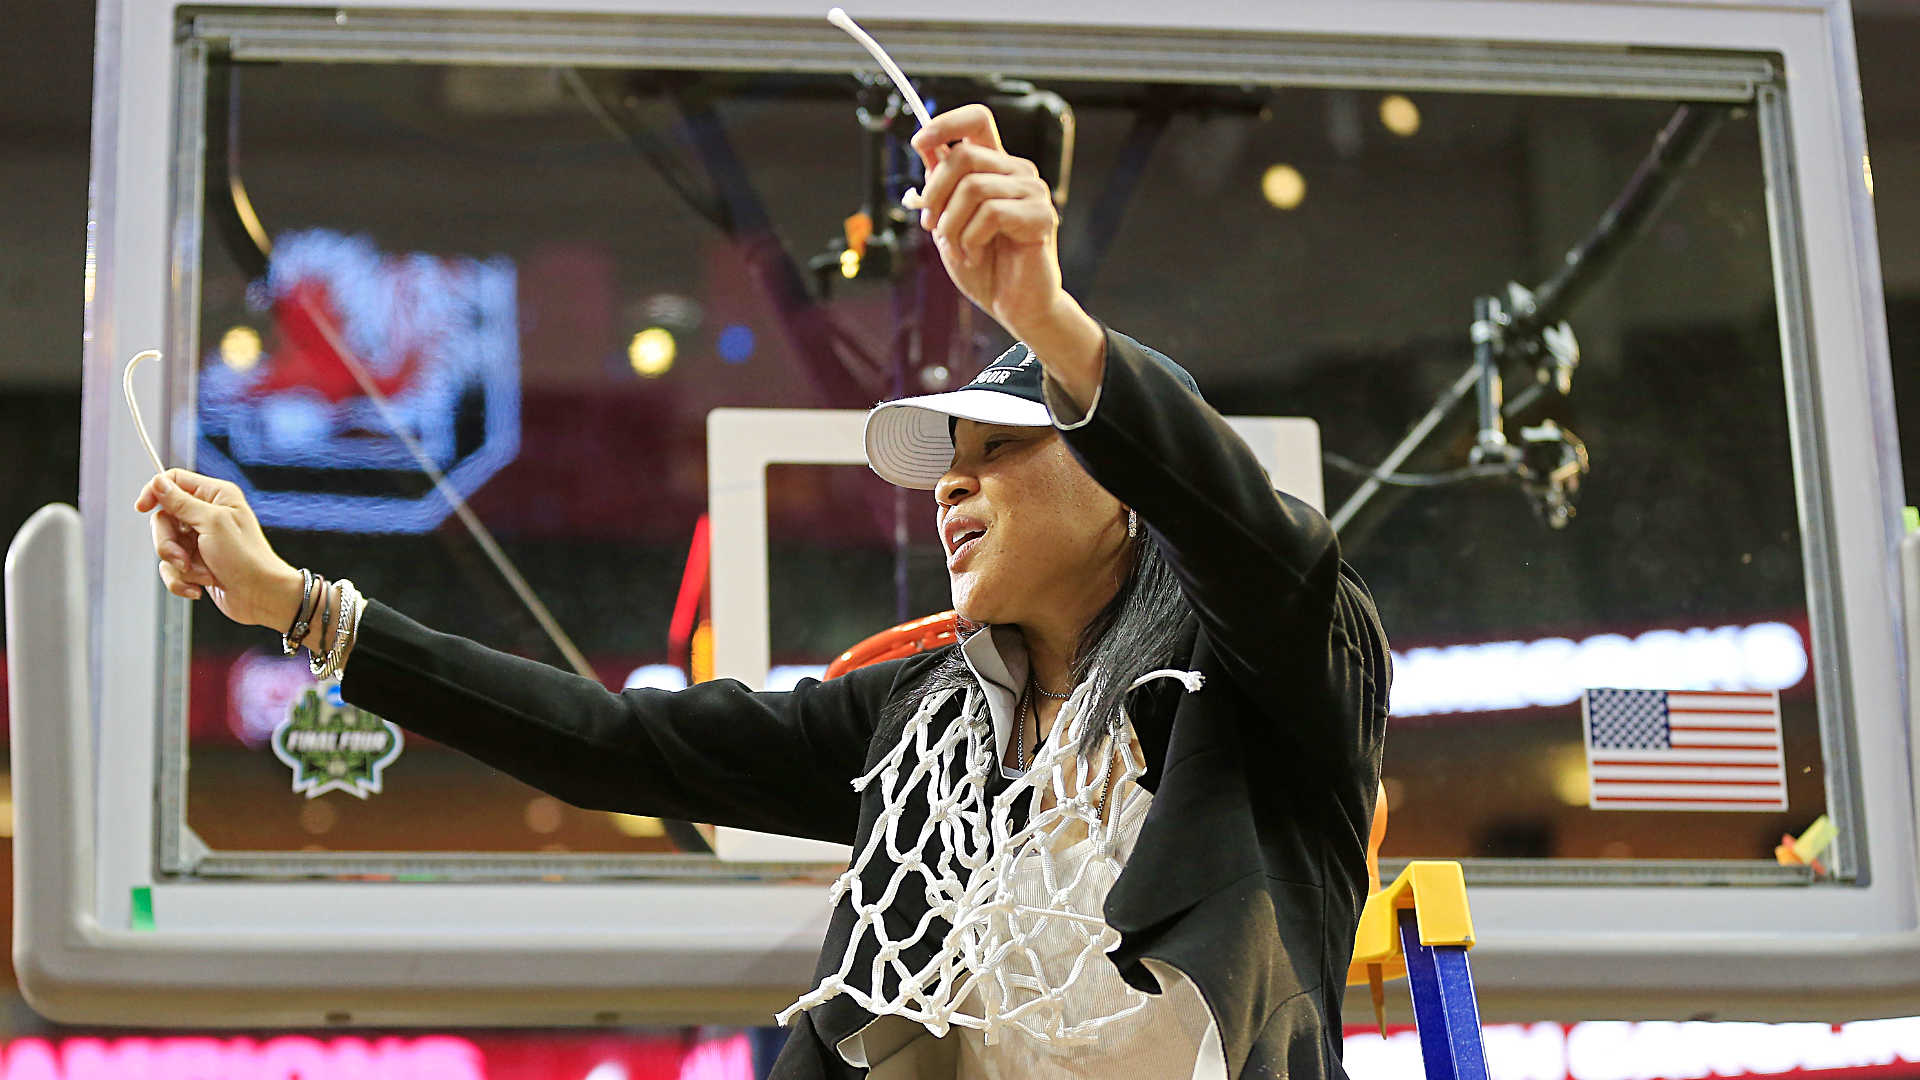 South Carolina Women's Basketball Team Declines White House Invite